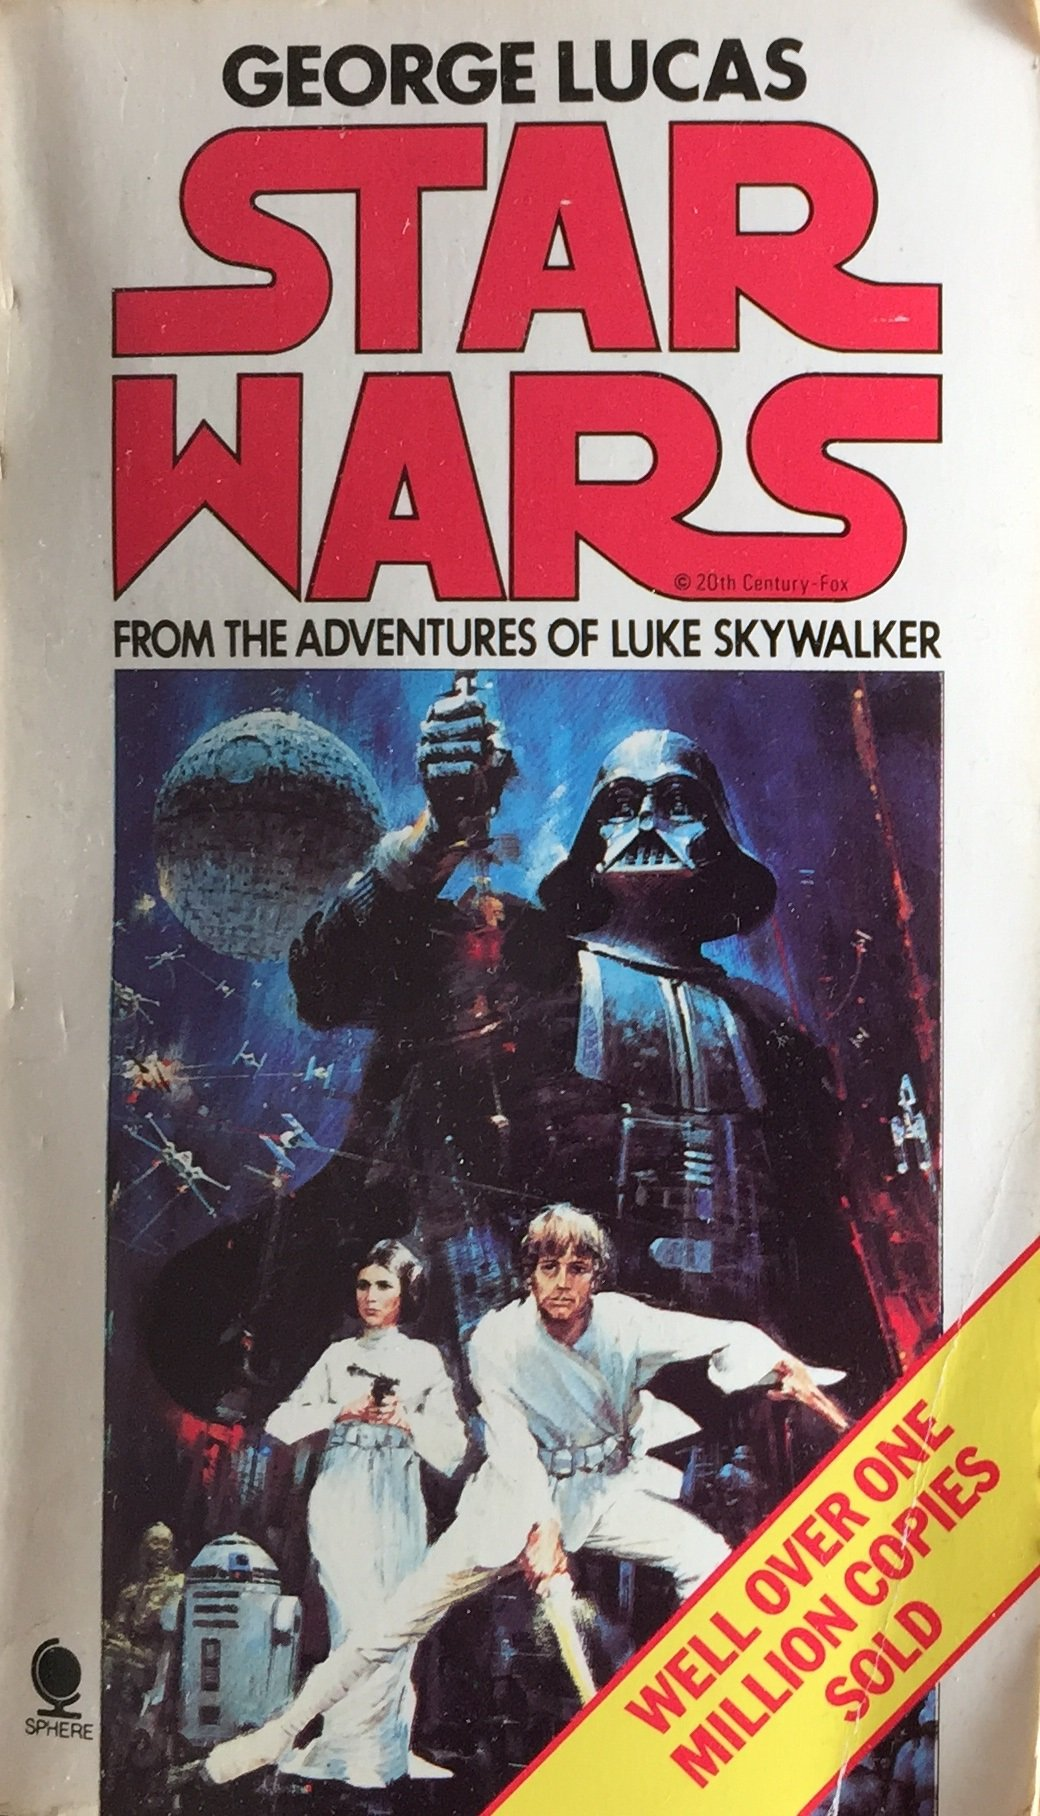 Star Wars: From the Adventures of Luke Skywalker (UK Paperback)